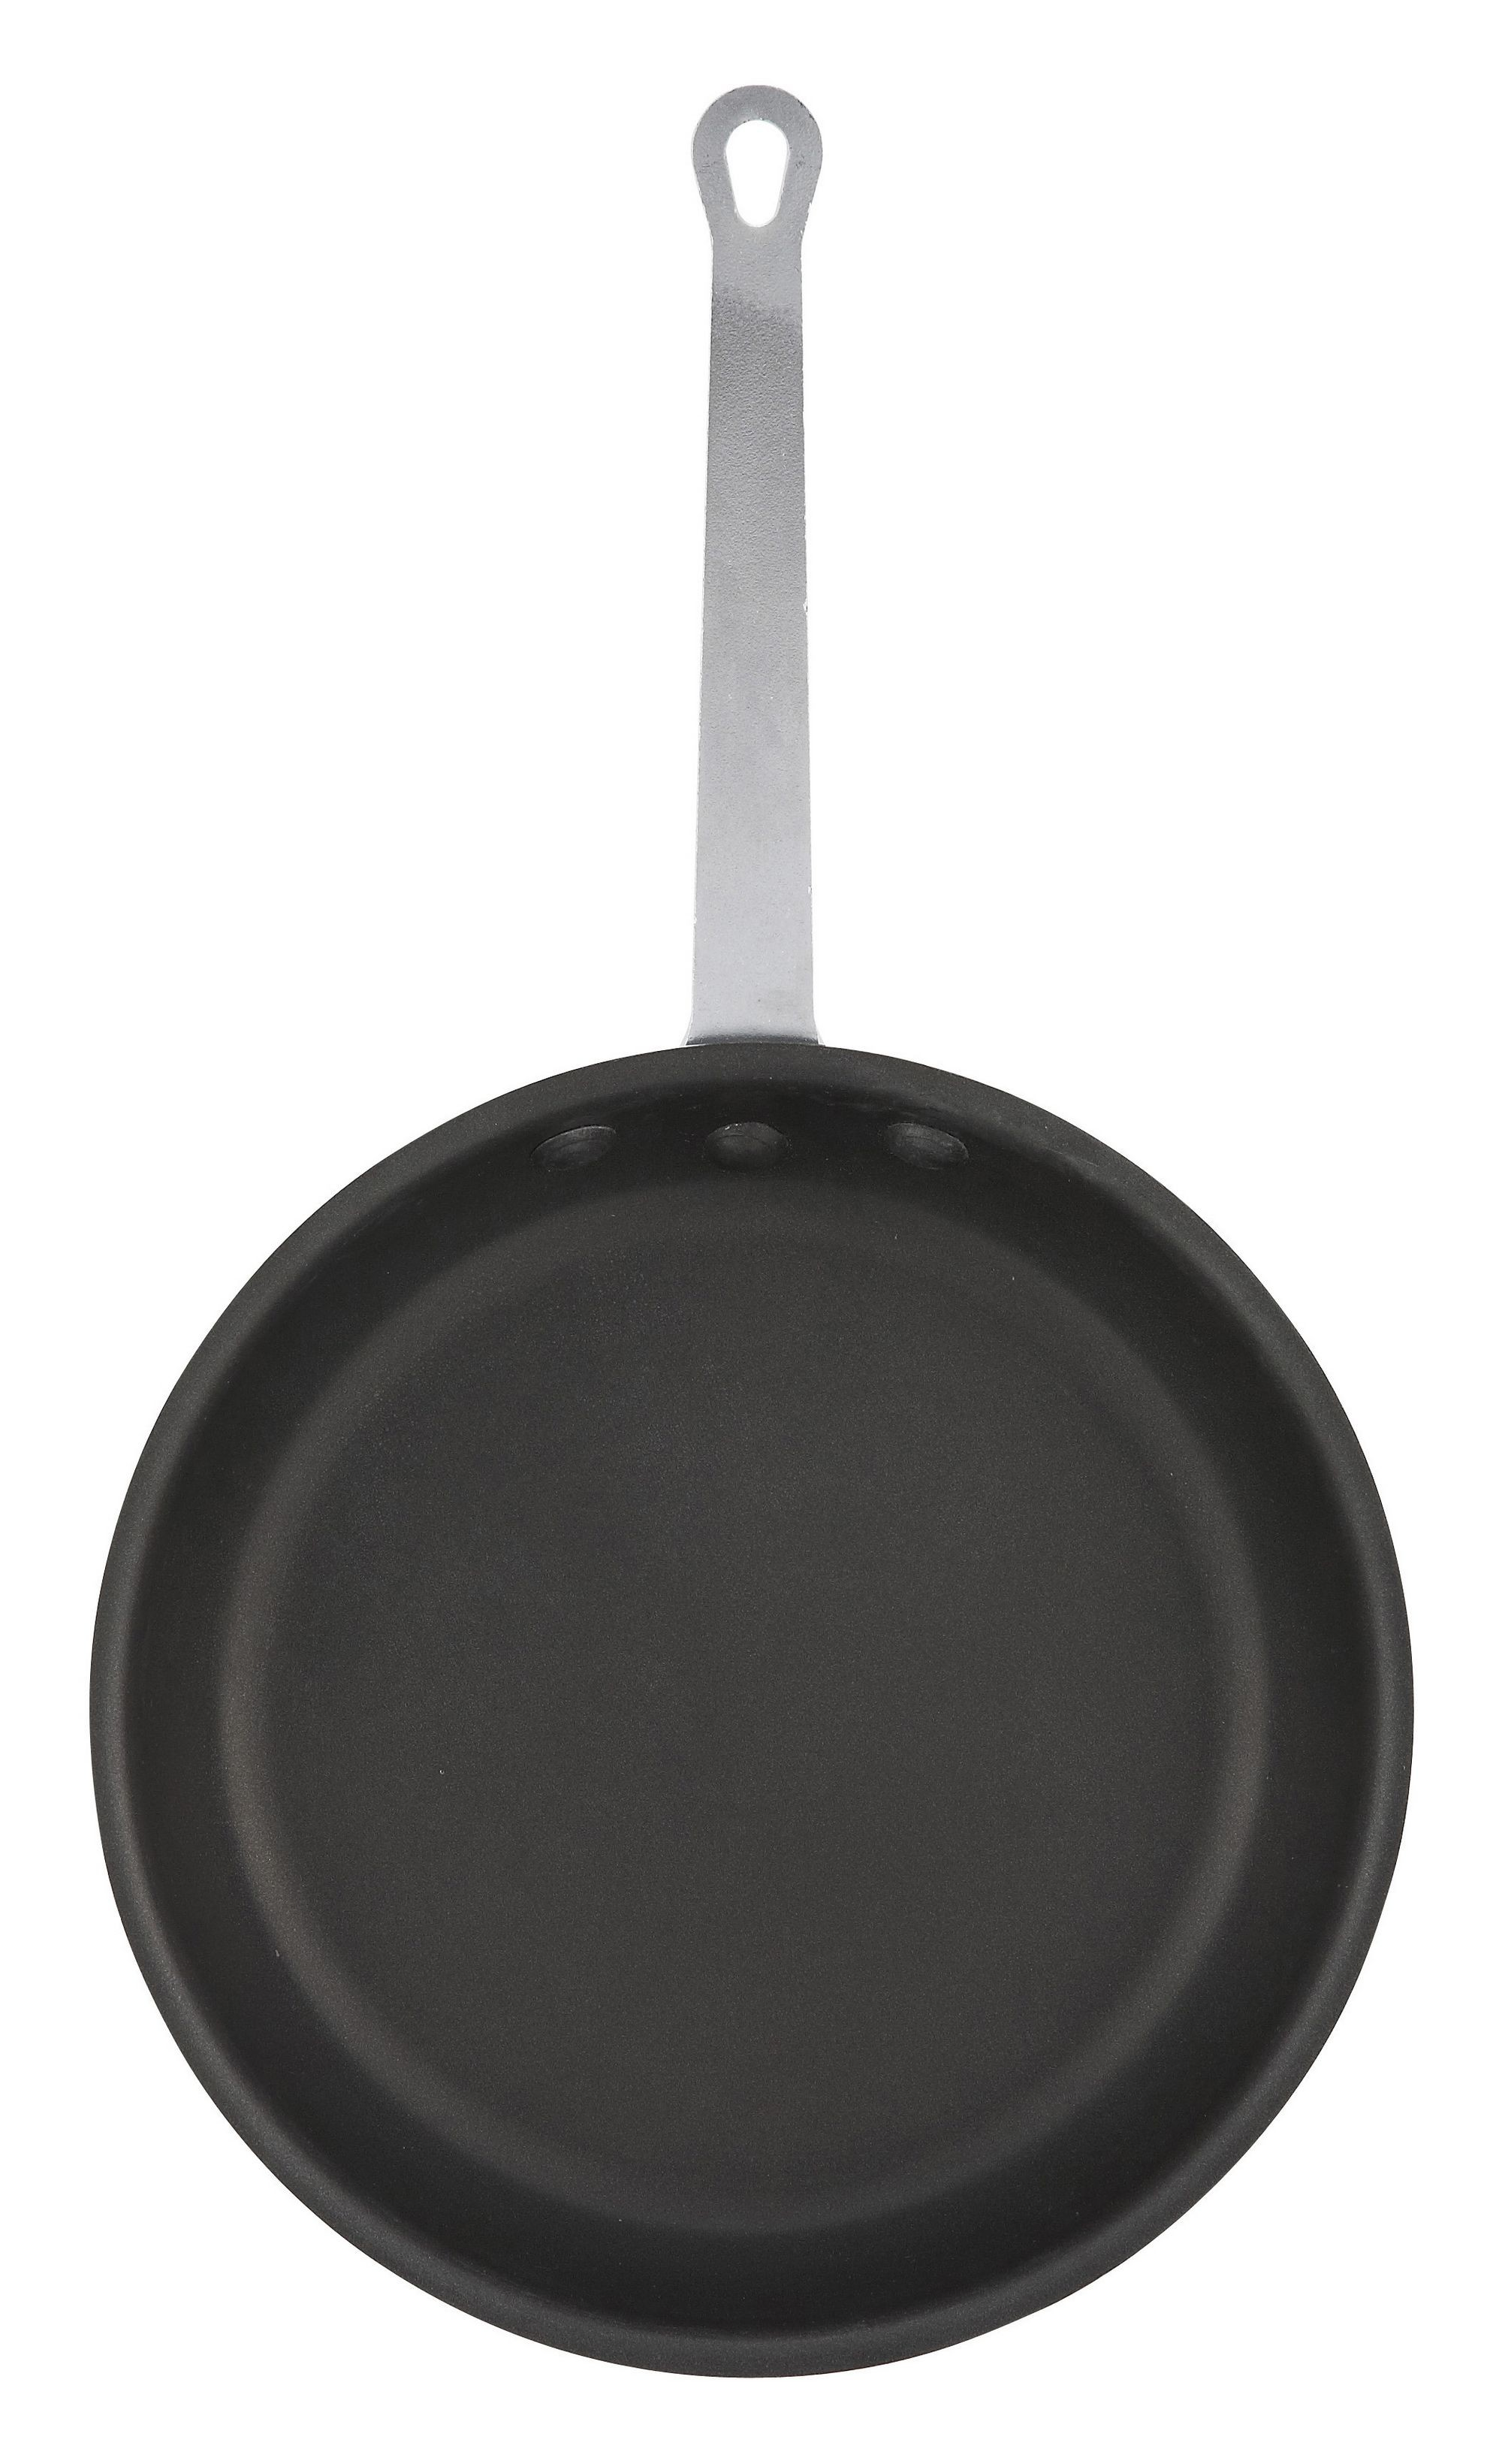 12 3.5 mm Aluminum Non-Stick Fry Pan